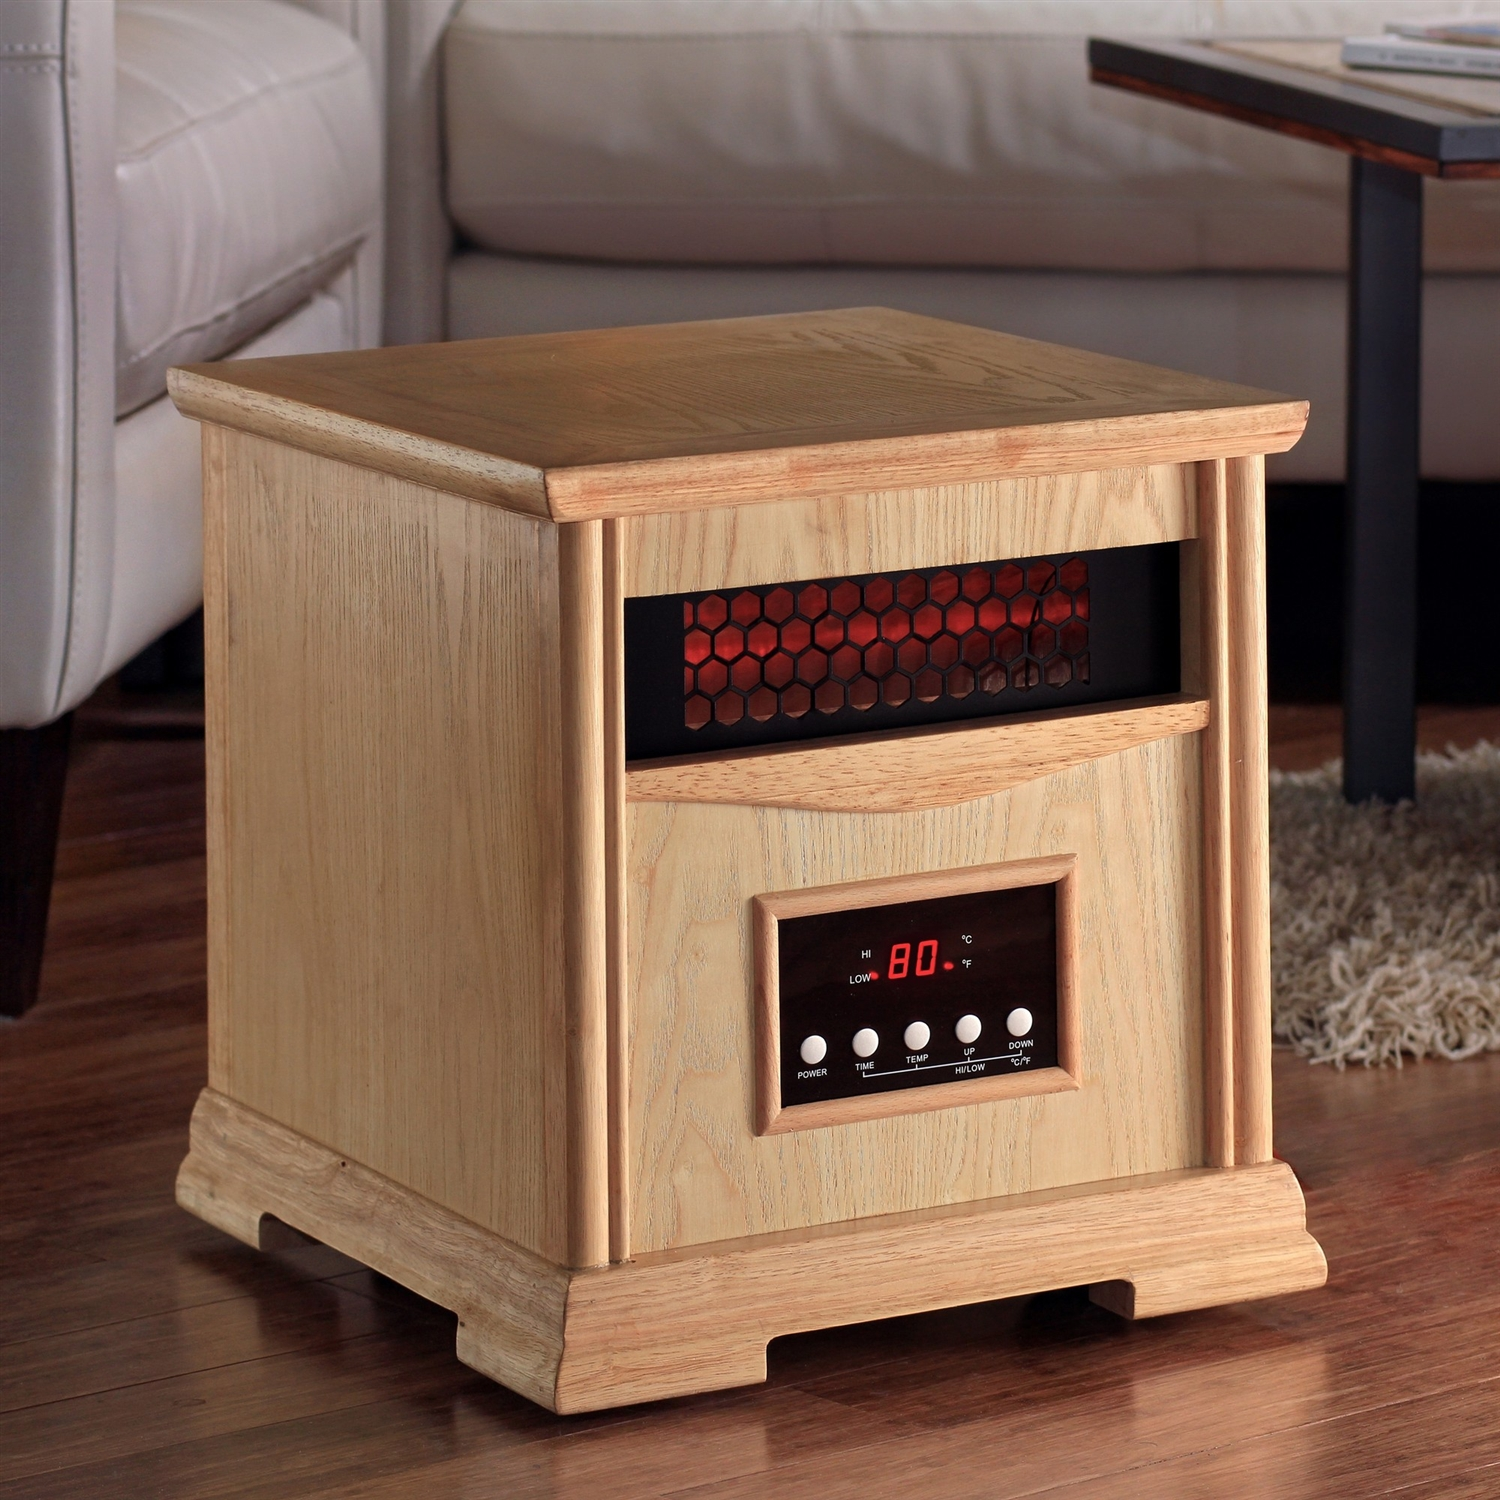 Light Oak Quartz Element 1,500 Watt Infrared Cabinet Space Heater, LODQE11902 :  This Light Oak Quartz Element 1,500 Watt Infrared Cabinet Space Heater is a beautifully crafted supplemental heat source that heats a single room up to 1000 square feet. This heater emits clean, evenly distributed heat, producing a soft, cozy heat the same way the sun warms the earth and atmosphere by means of safe infrared absorption. Its innovative design incorporates the absorption of infrared energy through a unique heater exchange, allowing production and circulation of purified heated air back into your desired space. The Heater acts like a portable furnace by raising the temperature evenly from floor to ceiling and helps reduce energy expense by allowing you to lower your in-home (primary) thermostat. Now you won't have to waste energy heating the entire house!  Exquisite wood cabinet; Built-in lifetime air filter; Easy-to-operate LED controls and convenient remote for wireless control; Plug-and-heat feature; Easy-glide wheels included for portability; Single speed blower rated at a quiet 46 dB; Variable heat controls with settings for 750W as well as 1500W;  Manufacturer provides a 1 year limited warranty. Product Type: Infrared; Grille Finish: Black; Material: Aluminum; Wood; Hardware Material: Stainless Steel; Aluminum.